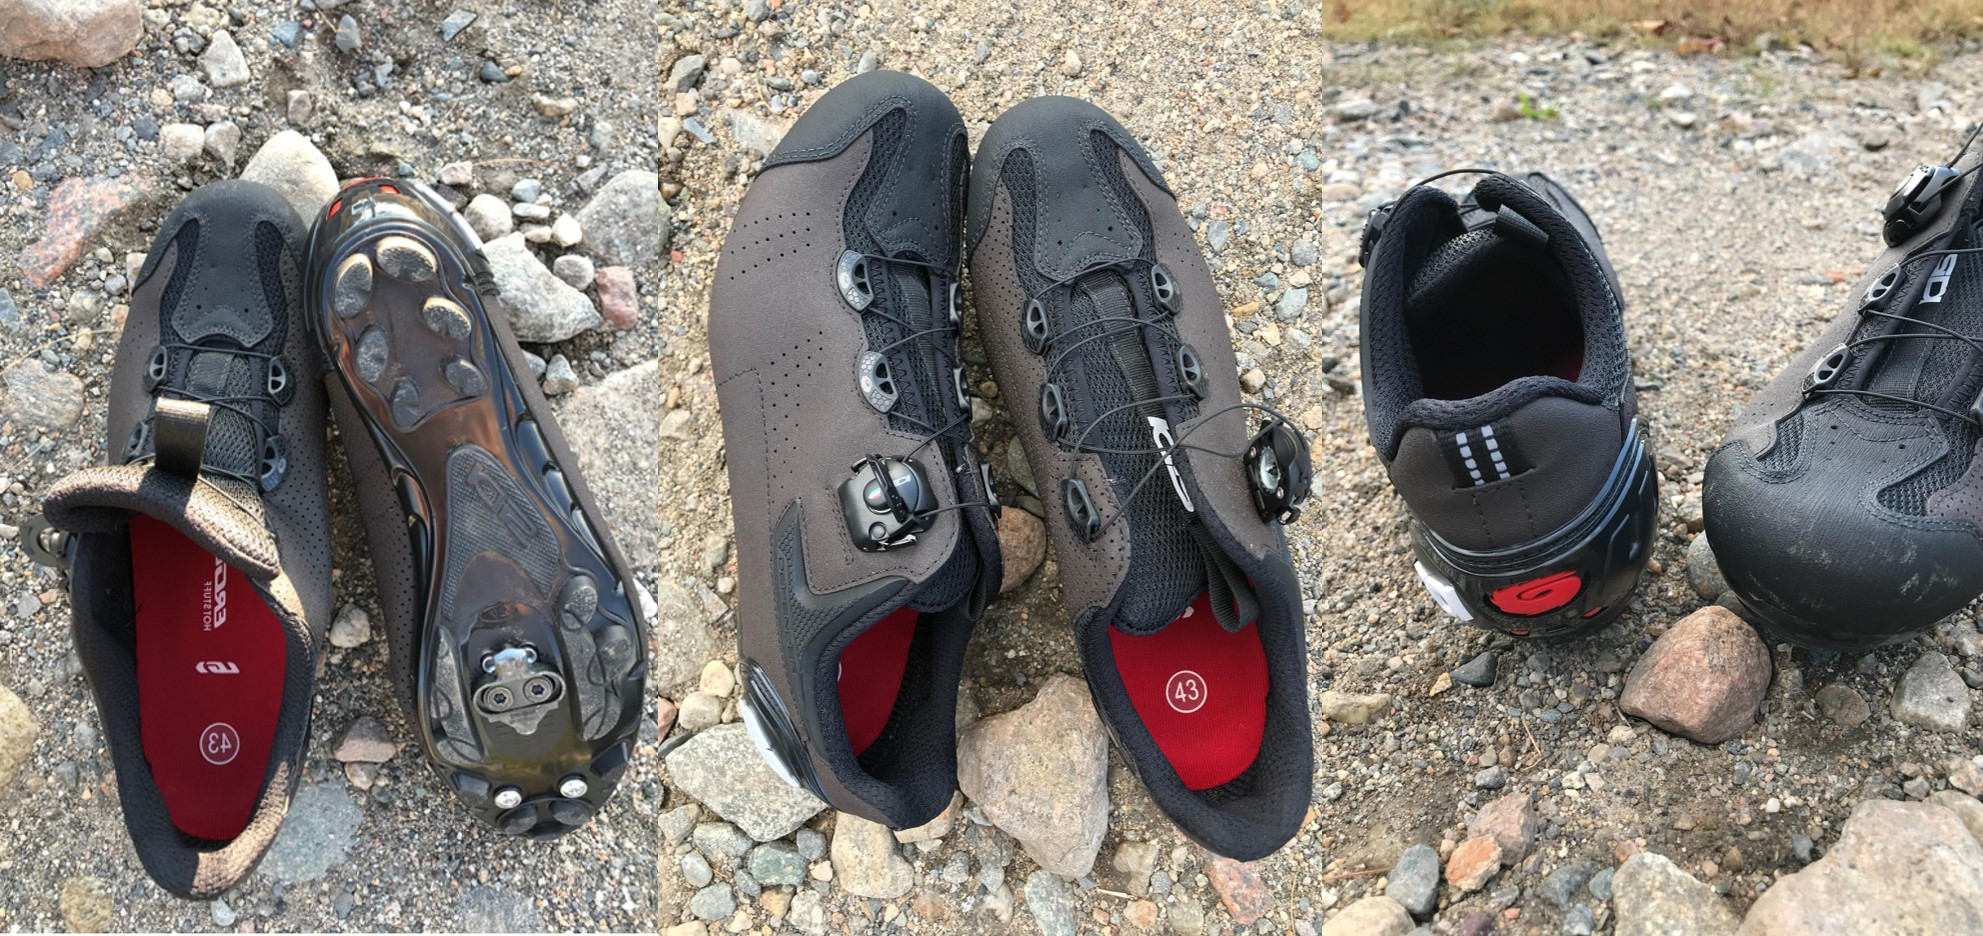 Sidi Gravel MTB Shoes